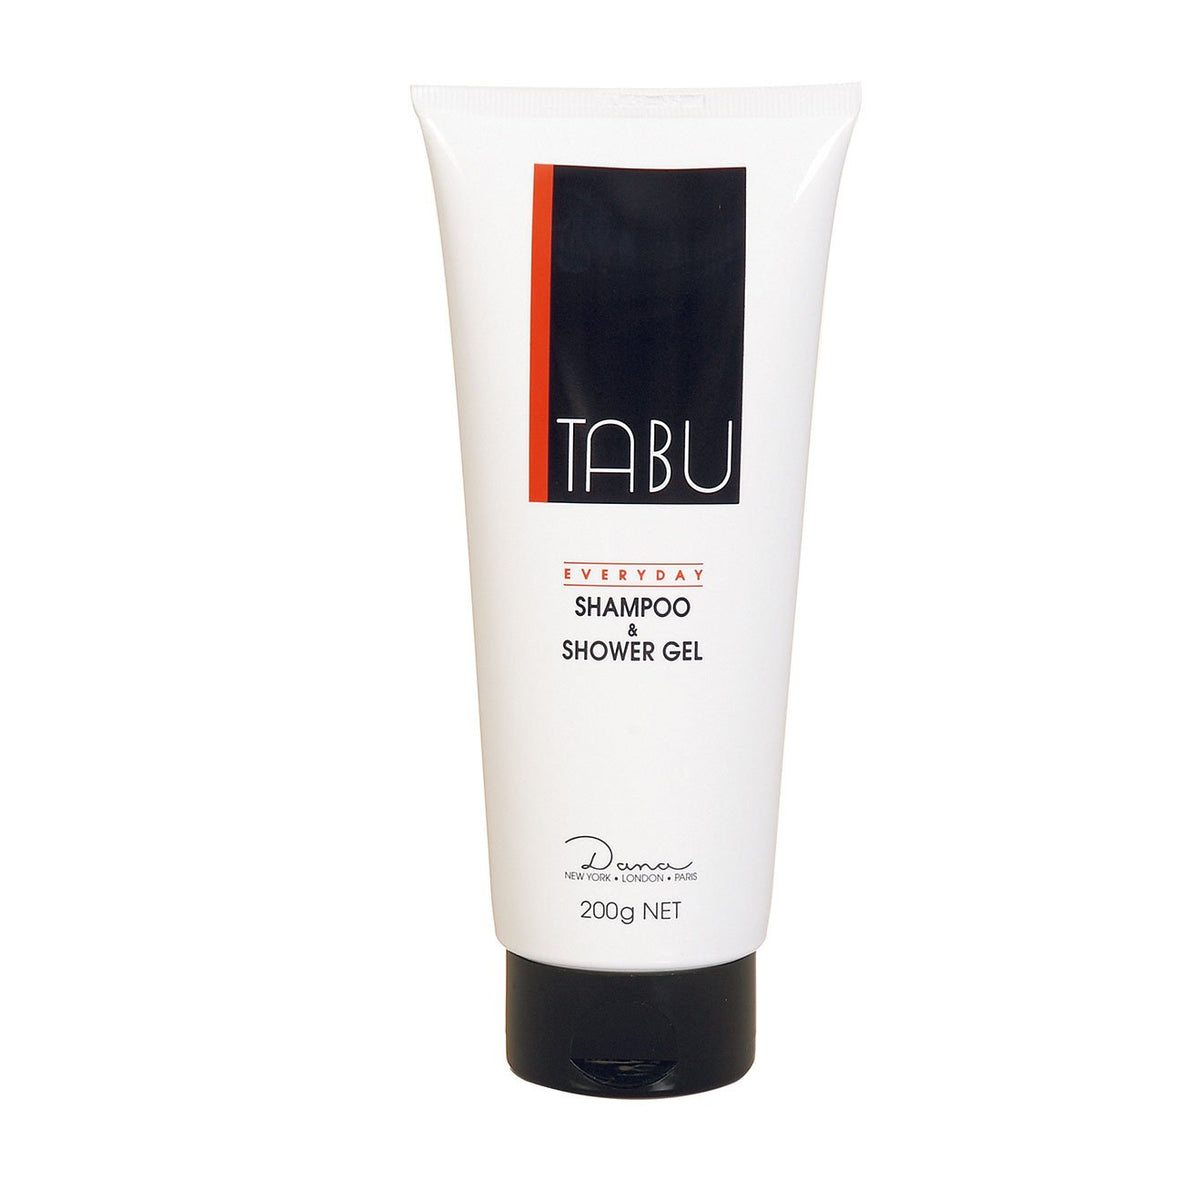 Tabu Shampoo & Shower Gel 200g